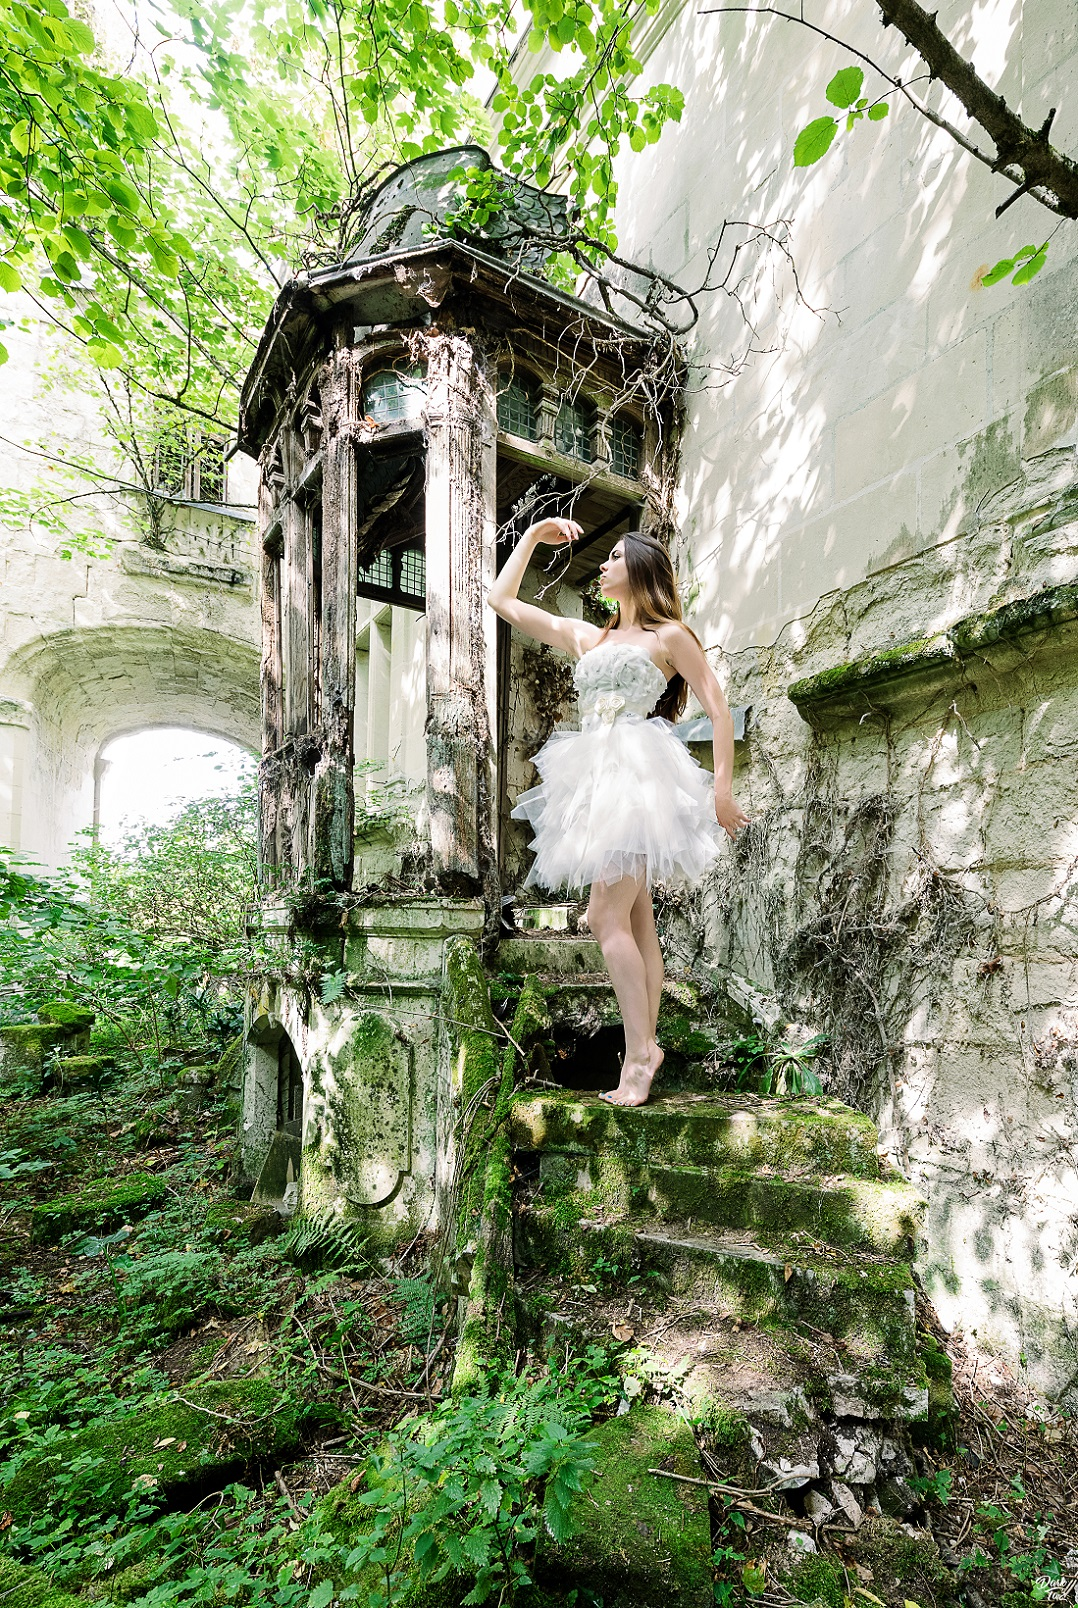 urbex, model, princess, castle